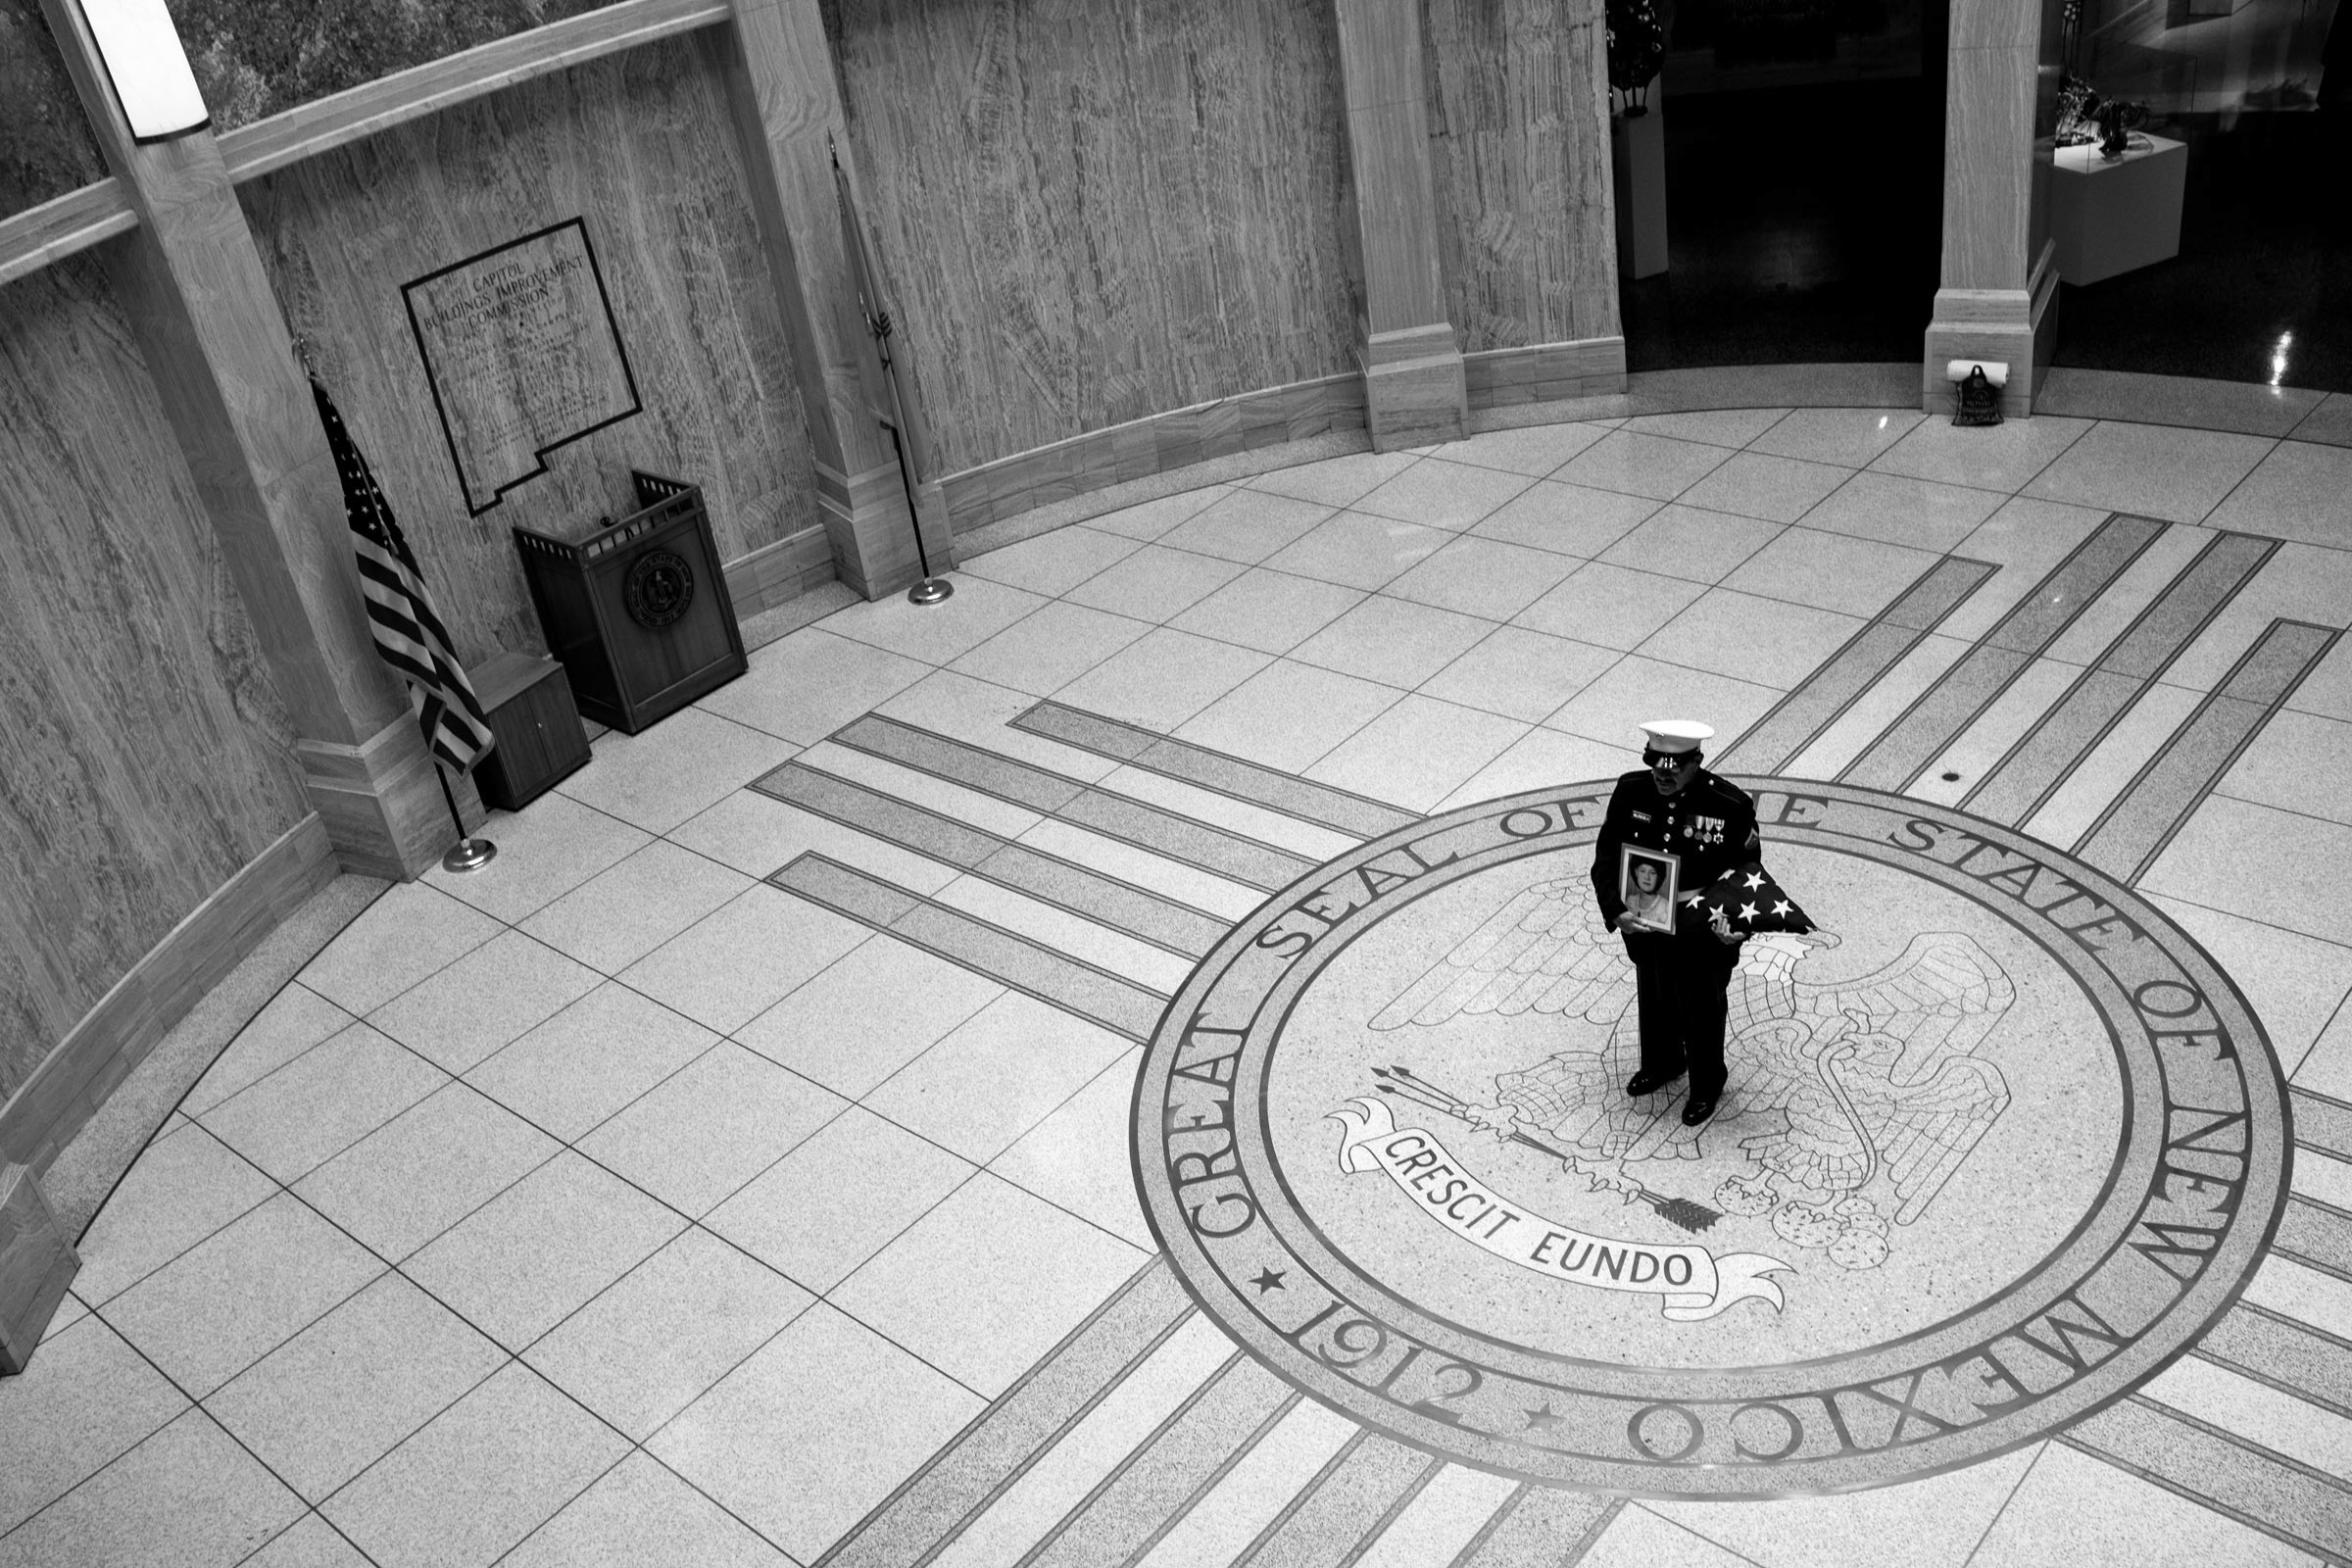 U.S. Marine Corps and Vietnam War veteran Manuel Valenzuela stands on the rotunda floor of the New Mexico State Capitol Building as he holds an American flag and a framed photograph of his mother in Sante Fe, New Mexico, Monday, Sept. 24, 2018.   Valenzuela and his older brother Valente, a U.S. Army and Vietnam War veteran, have been fighting deportation since 2009 for misdemeanor offenses which they completed sentences for. Their birth certificates classify them as resident aliens since their mother, a native from New Mexico, gave birth to them in México. Their deportation cases have been lingering in the courts. They might qualify as U.S. citizens as a result of their mother's citizenship status. (Photo by Joel Angel Juárez/GroundTruth)